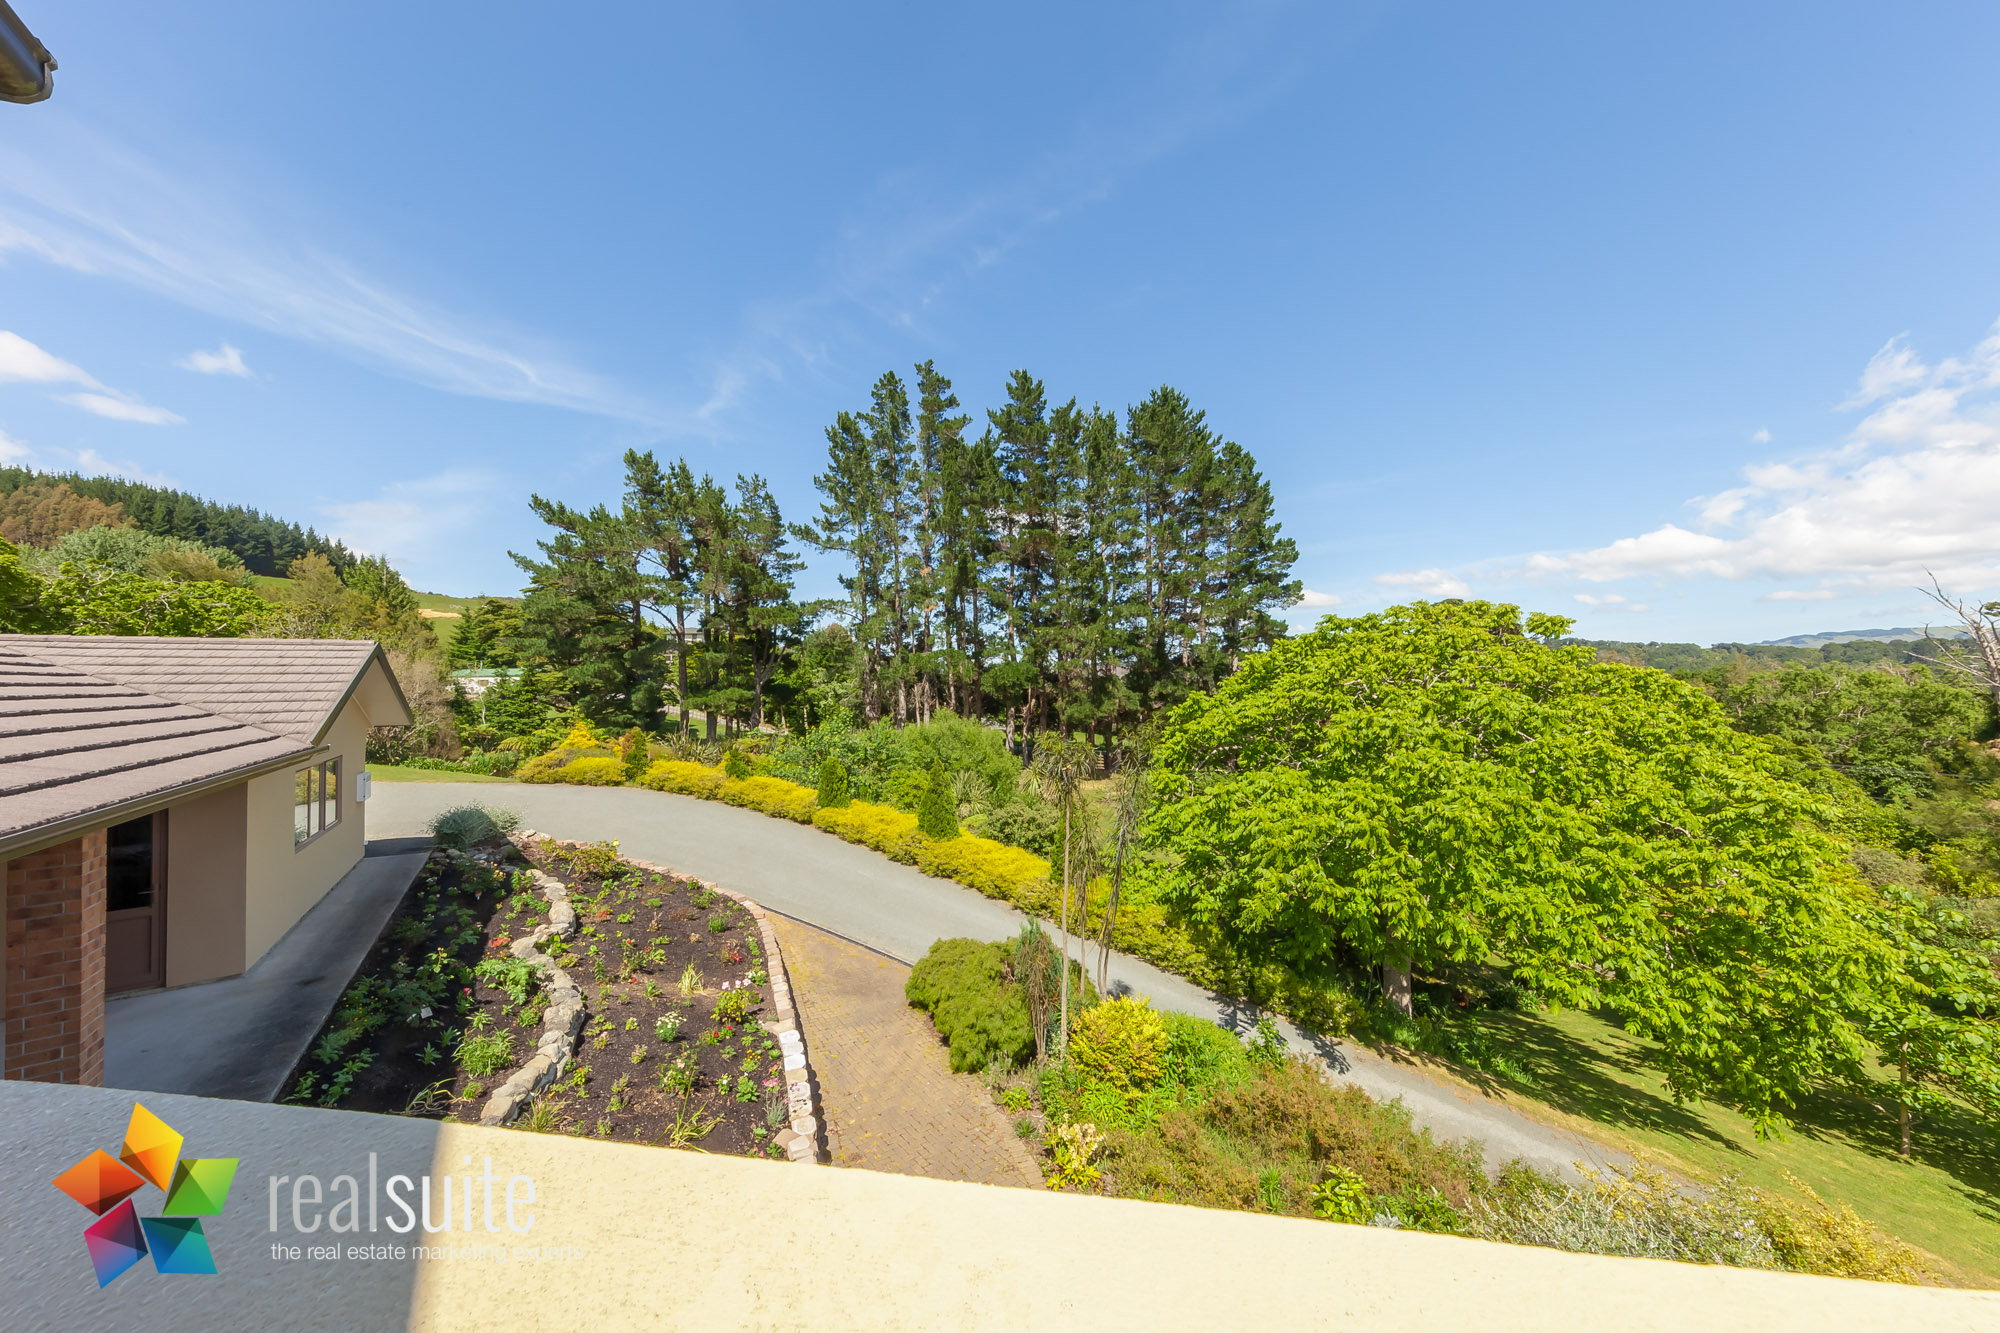 156 Mangaroa Valley Road, Mangaroa 5885